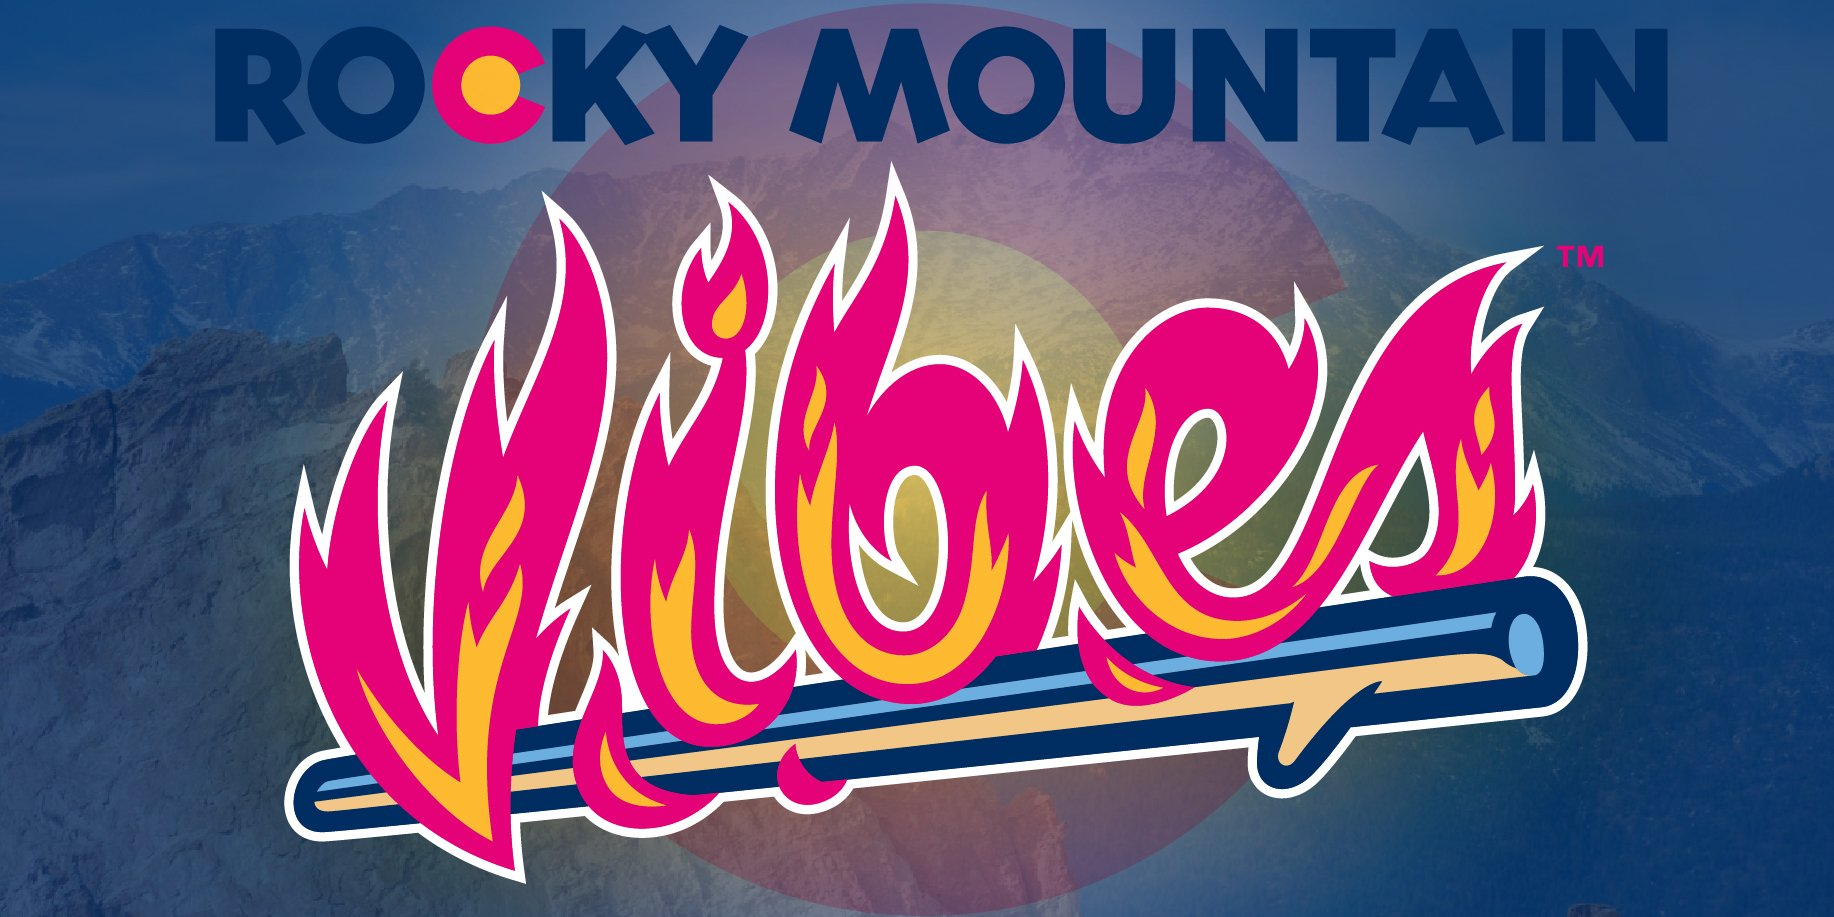 The Rocky Mountain Vibes is the new name of the baseball team that will call Security Service Field home starting next summer.